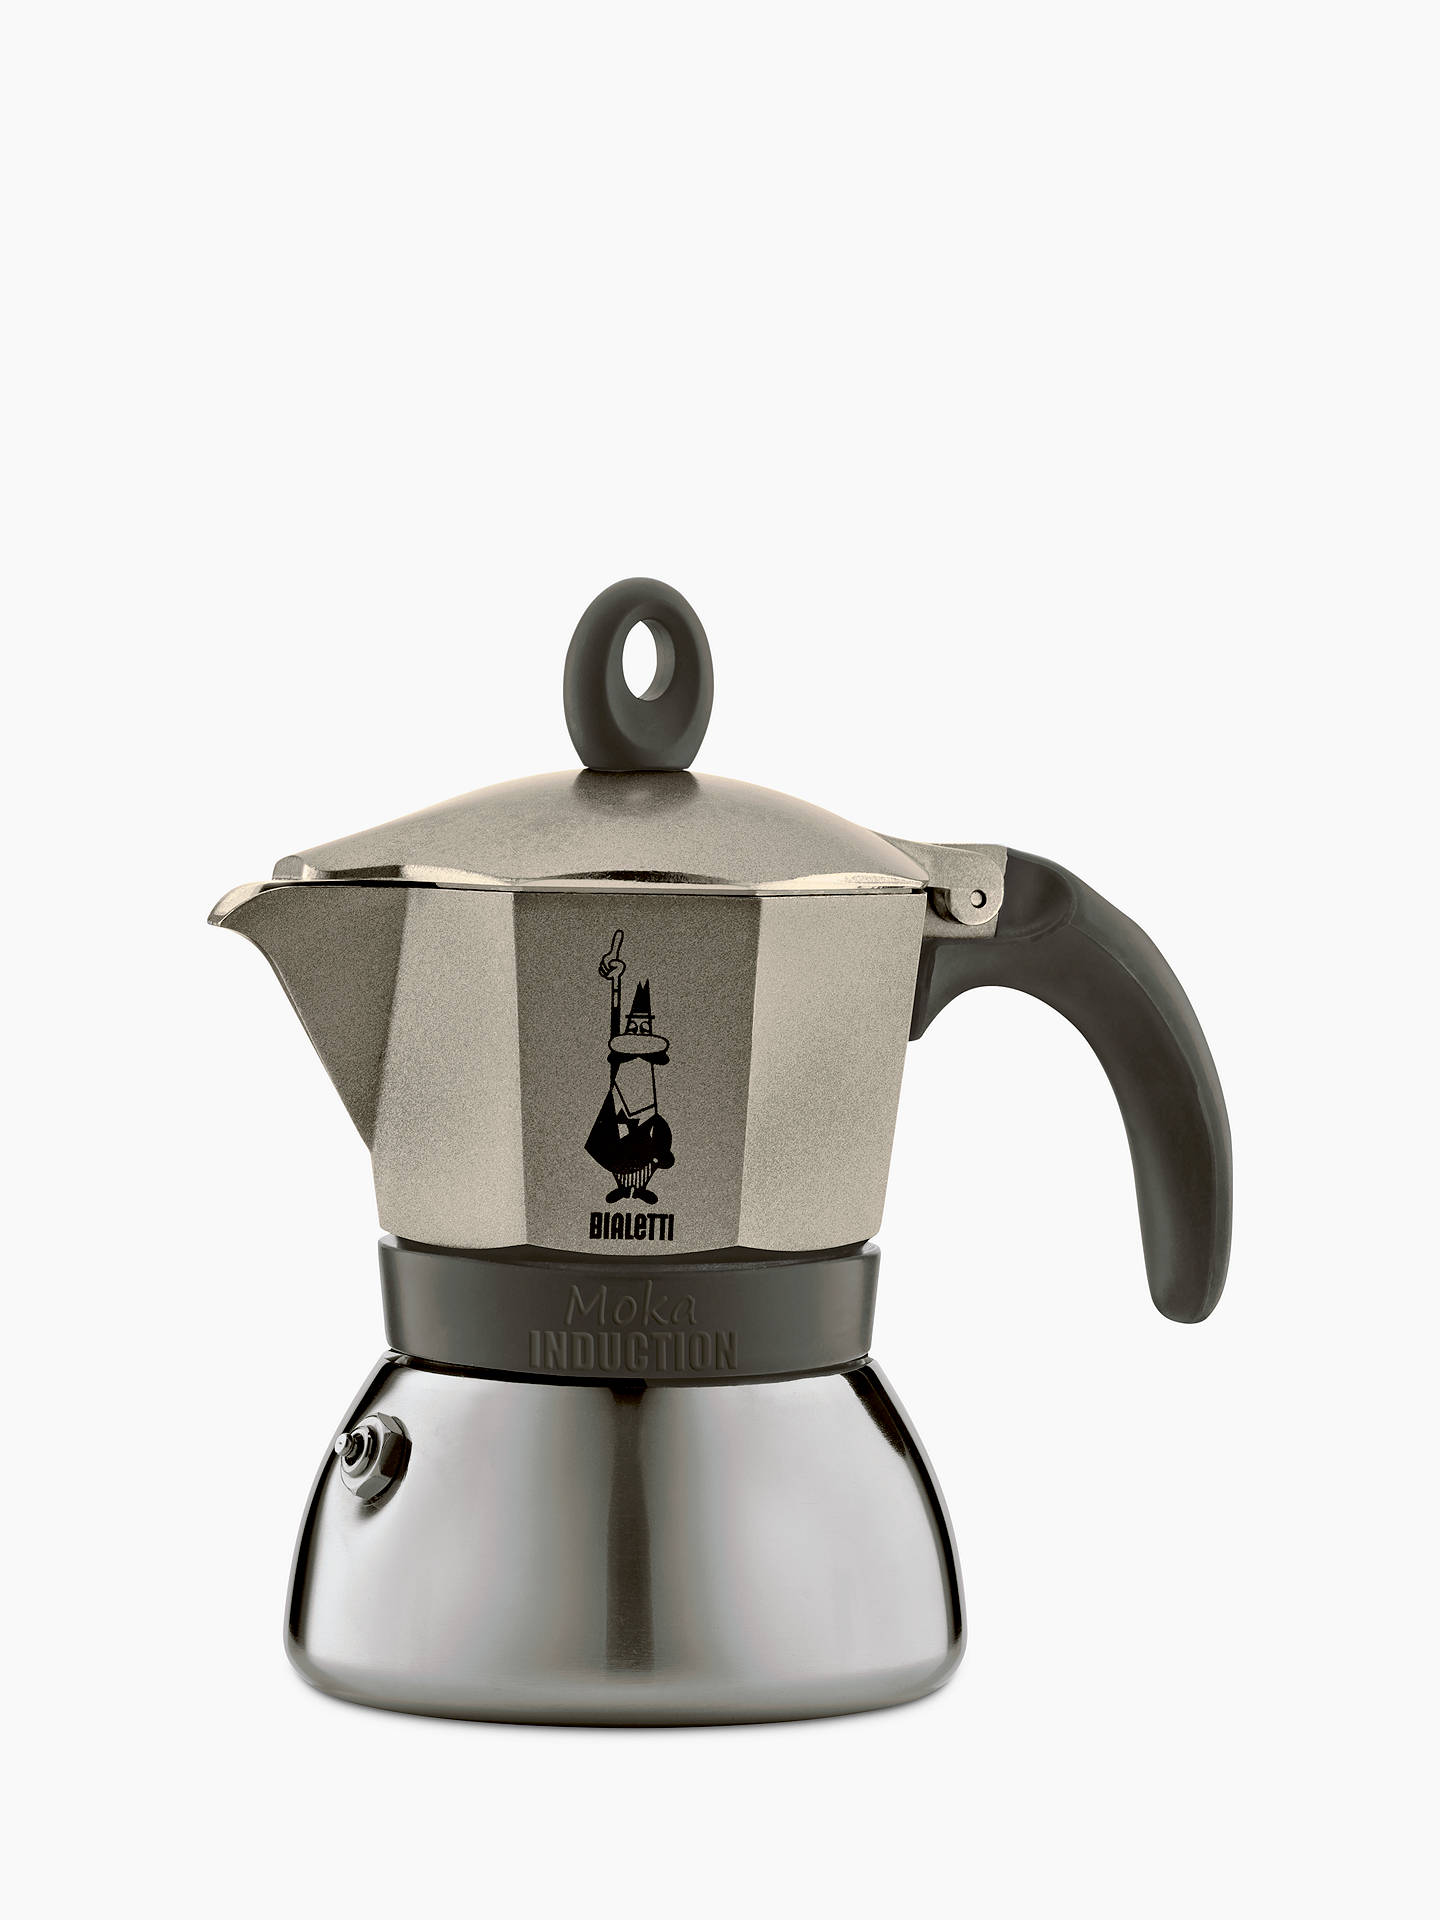 Bialetti Moka Induction Coffee Maker 3 Cup Online At Johnlewis